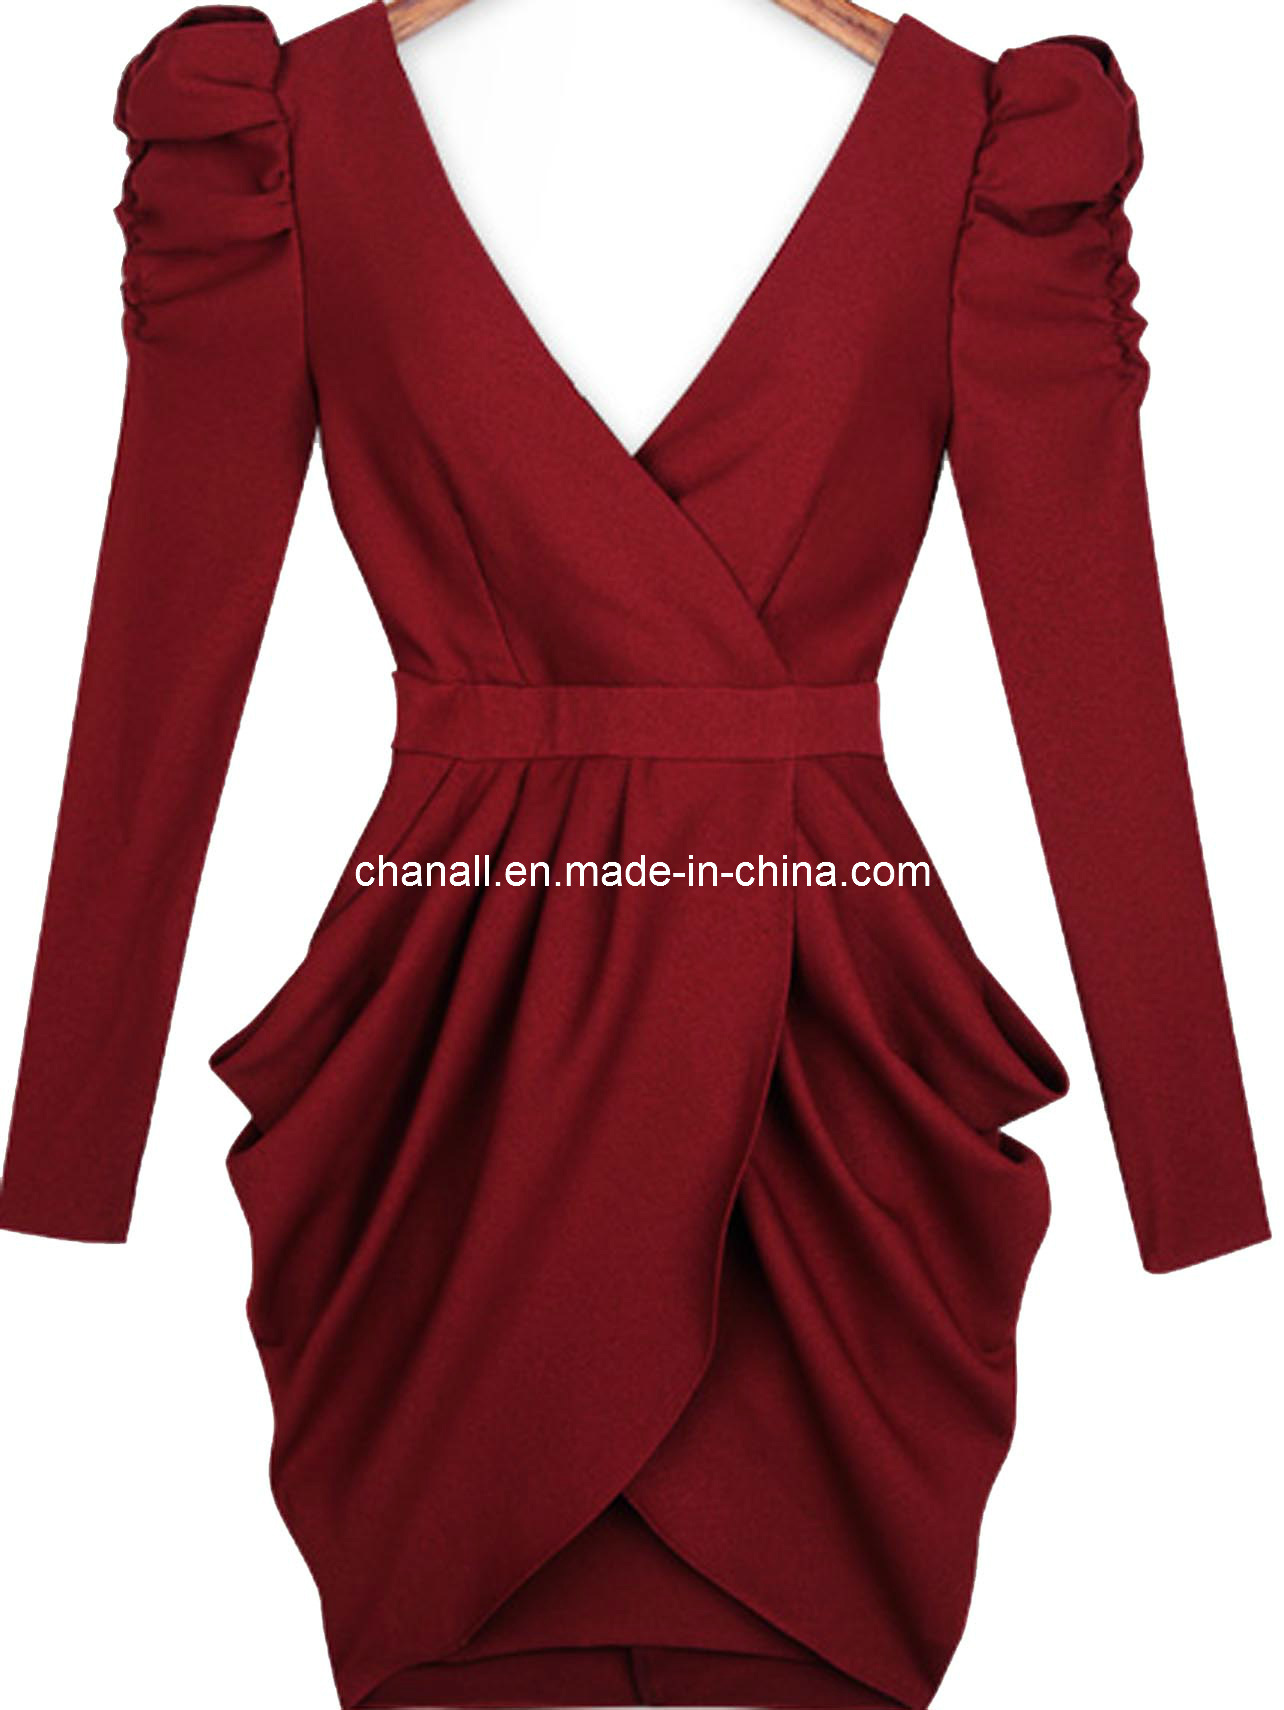 China lady fashion fall winter cocktail dress chnl for Formal dresses for winter wedding